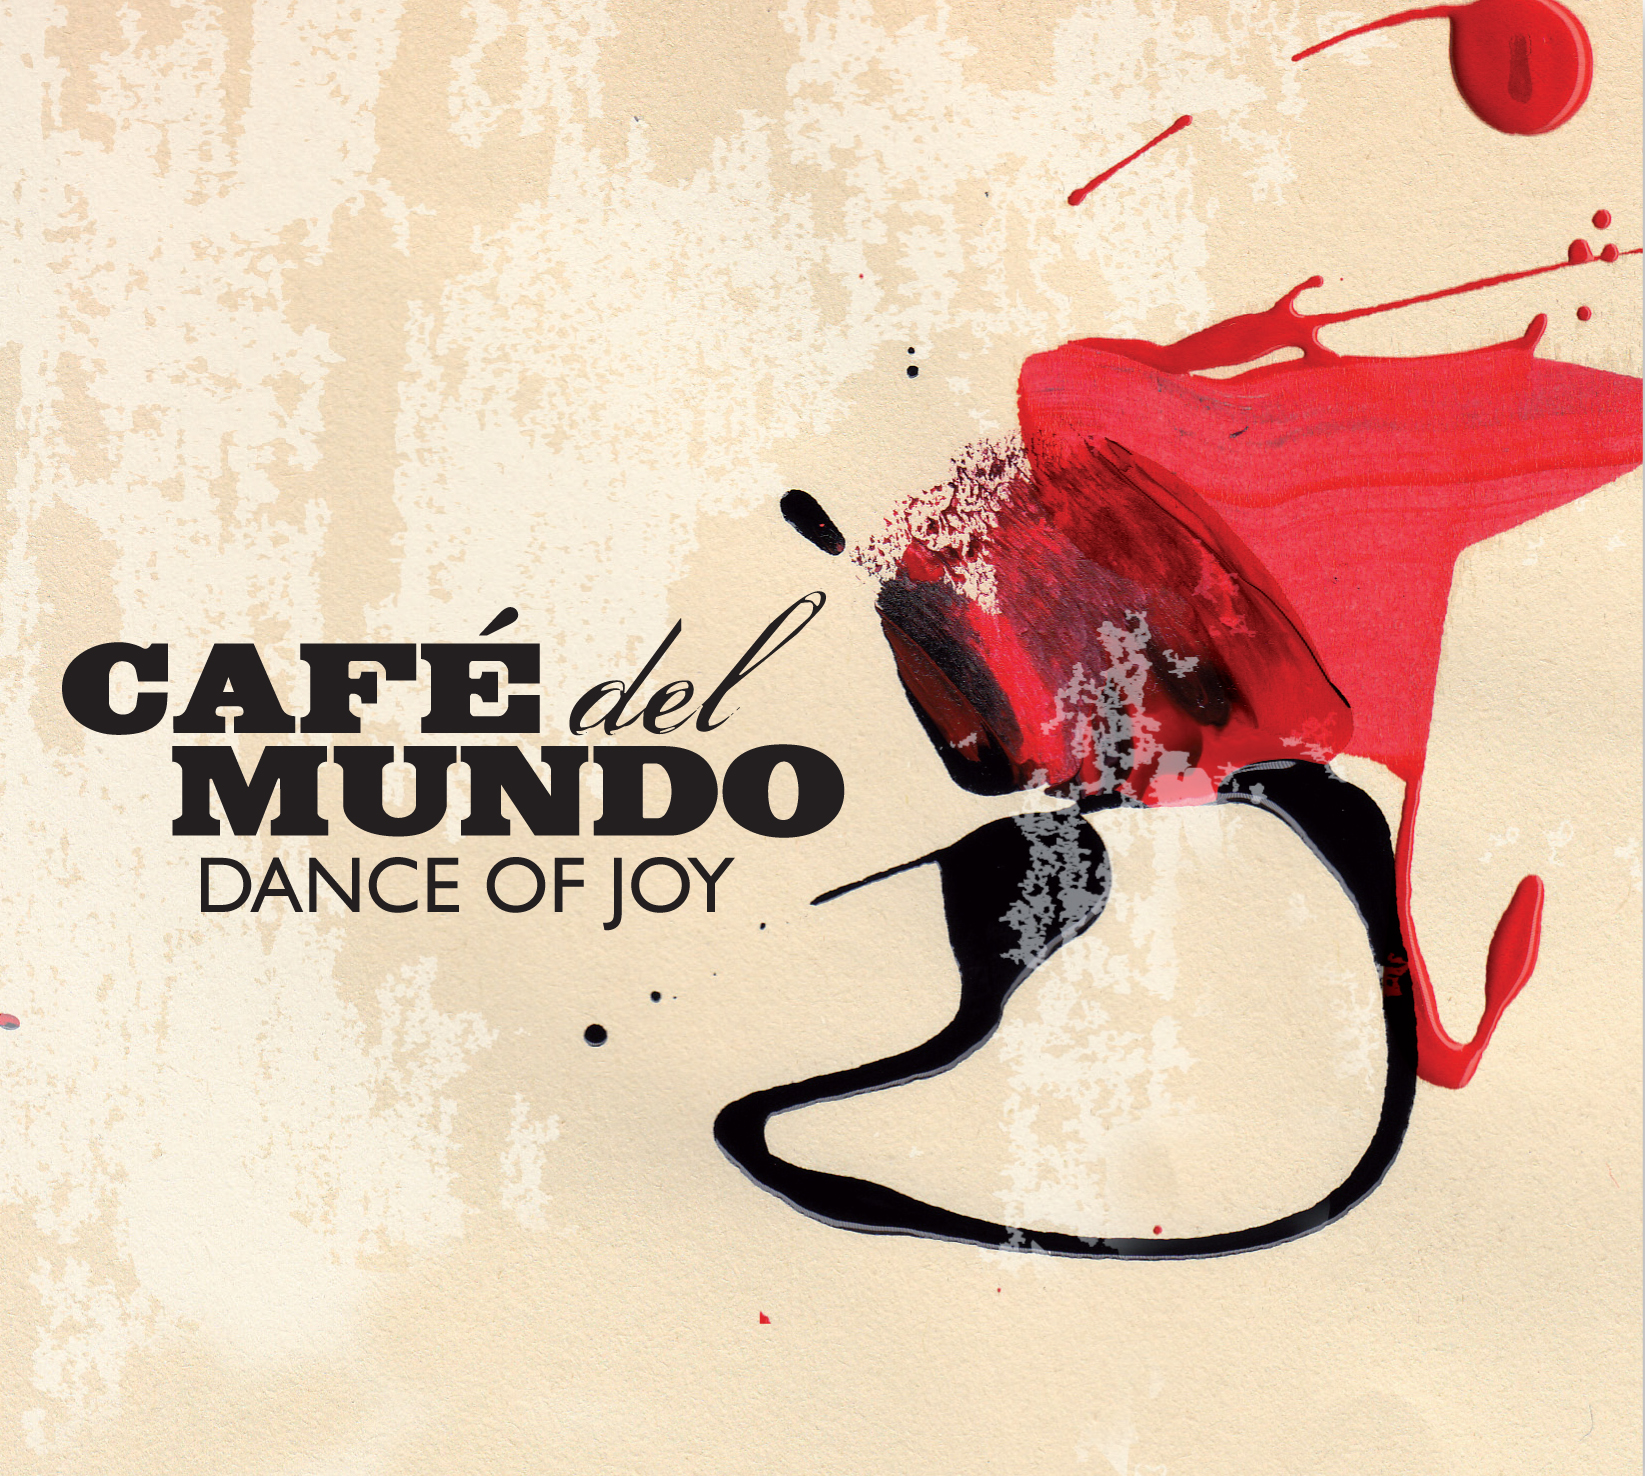 Café Del Mundo Dance Of Joy Glm Music Gmbh